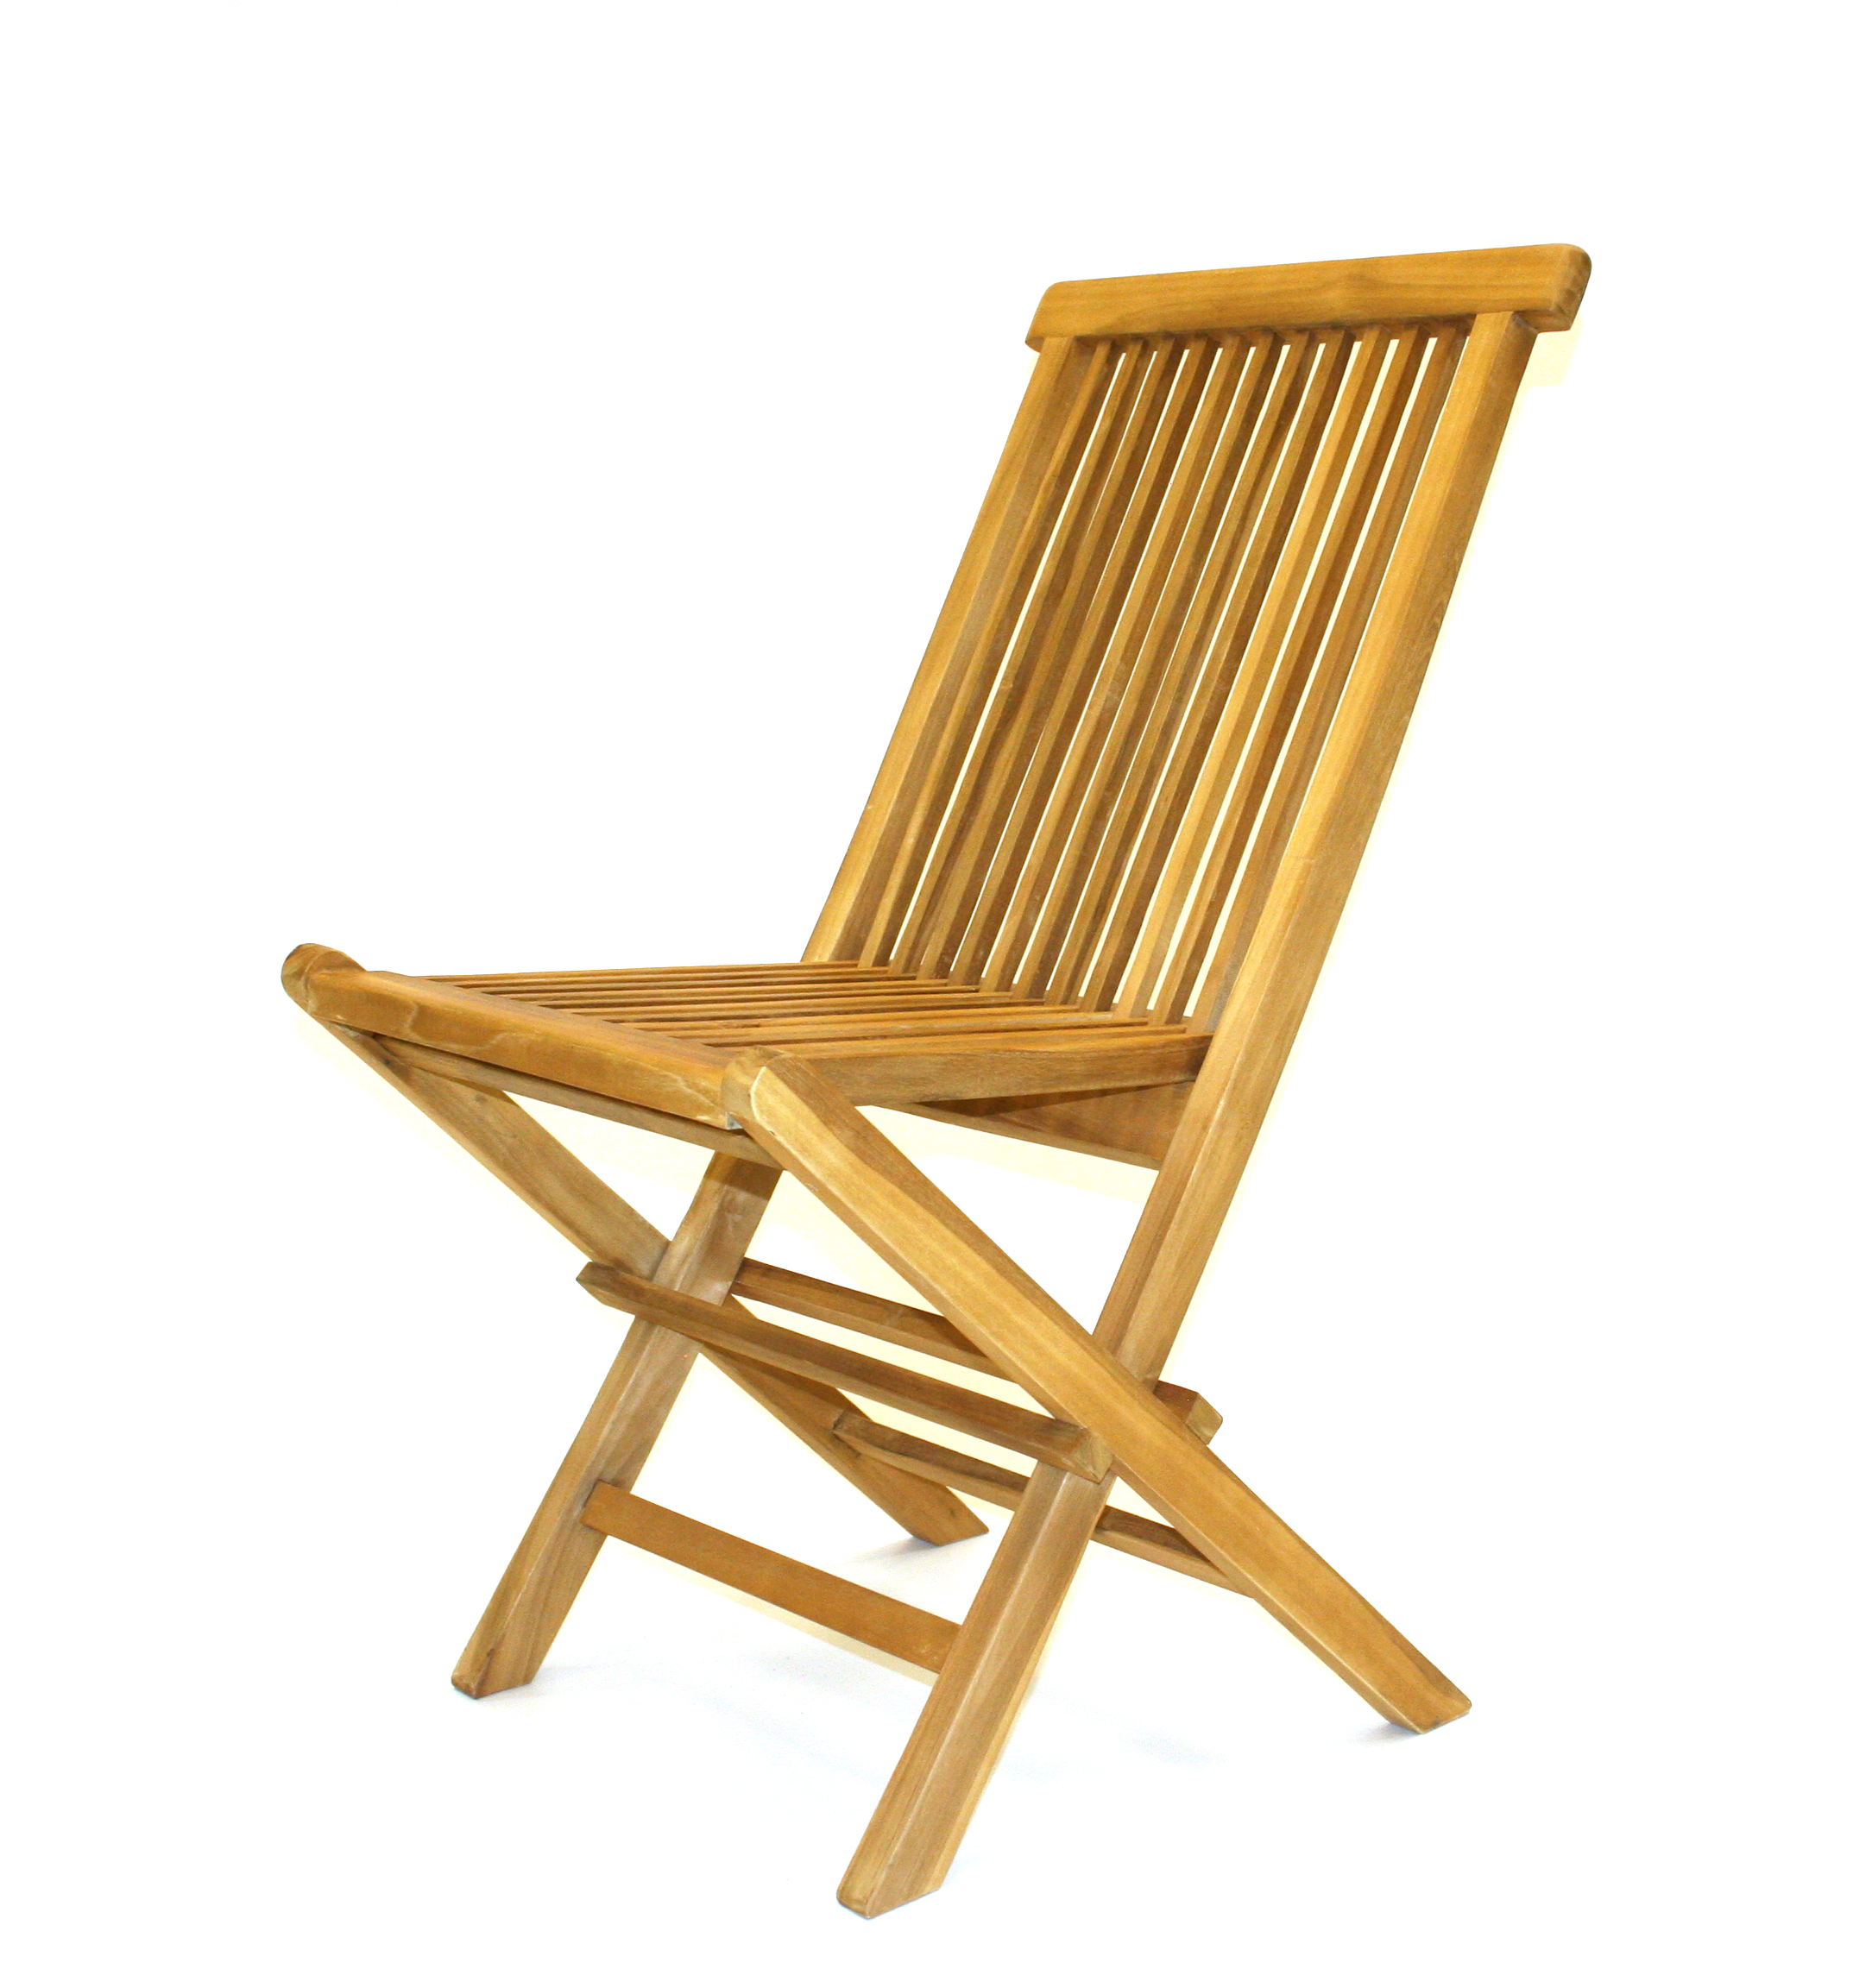 teak table and chairs garden stressless chair sizes cafes events exhibitions be event hire